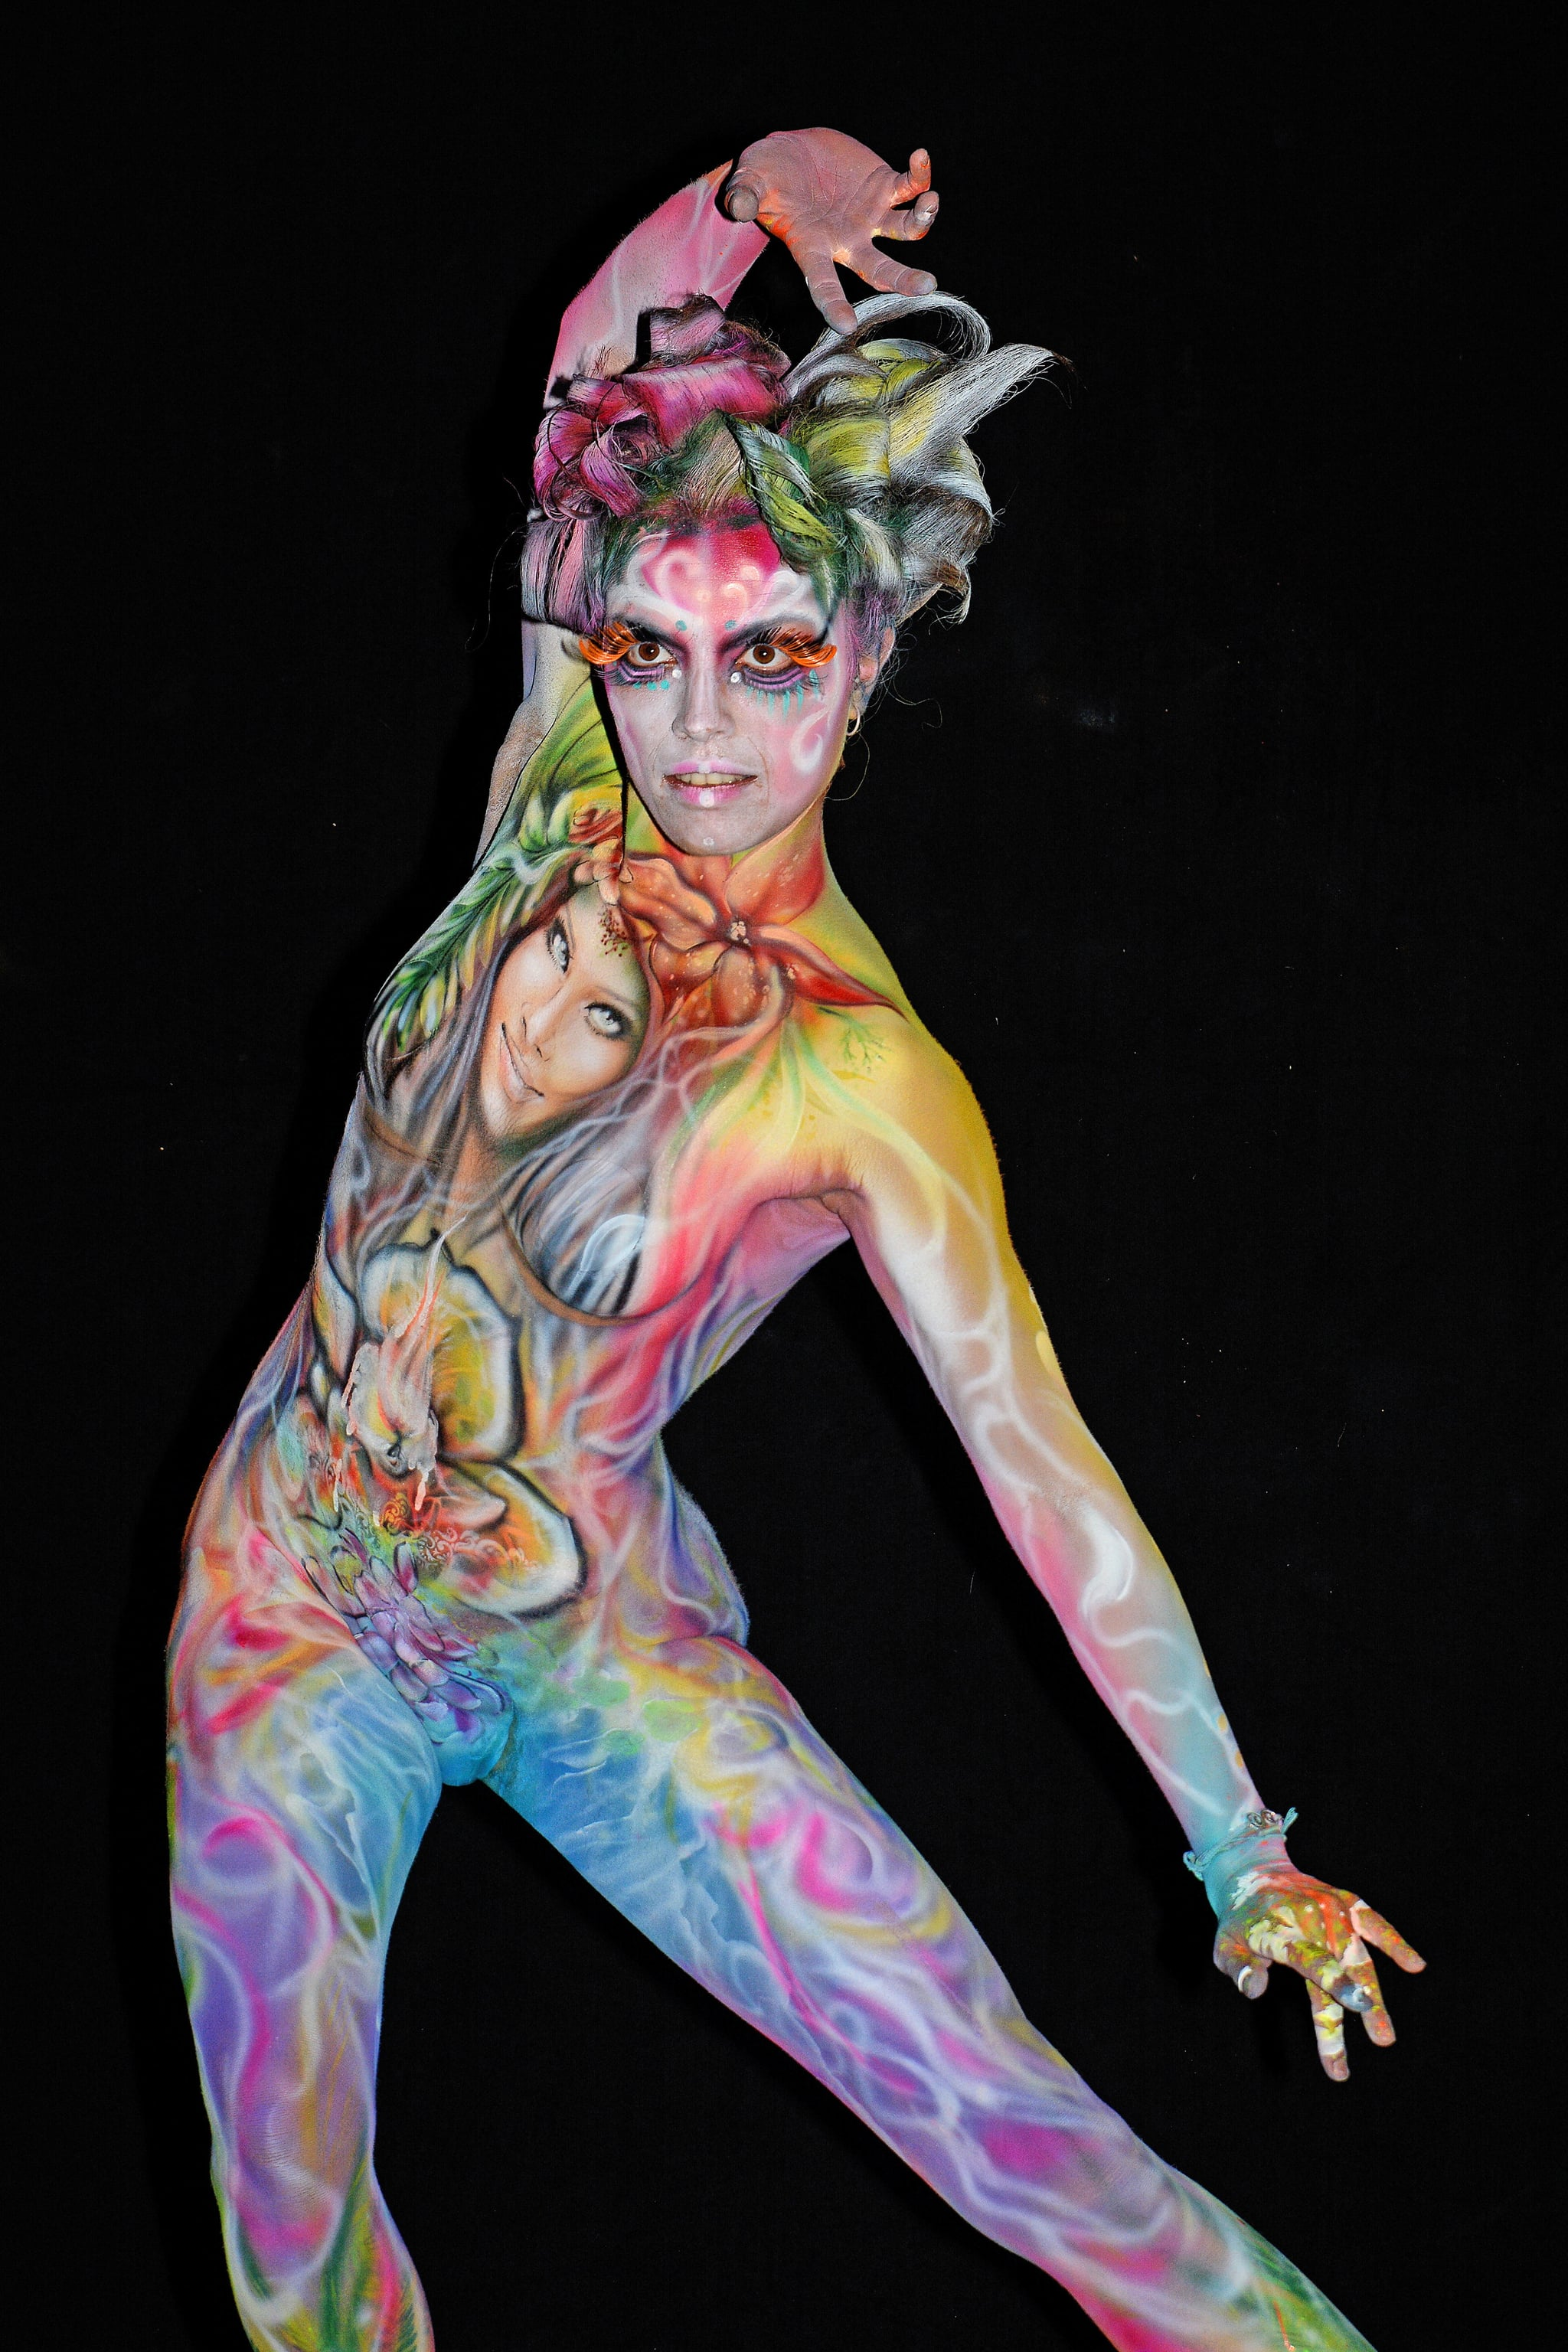 Makeup Beauty Hair Skin 50 Photos From The World Bodypainting Festival That Ll Blow Your Mind Popsugar Beauty Photo 27